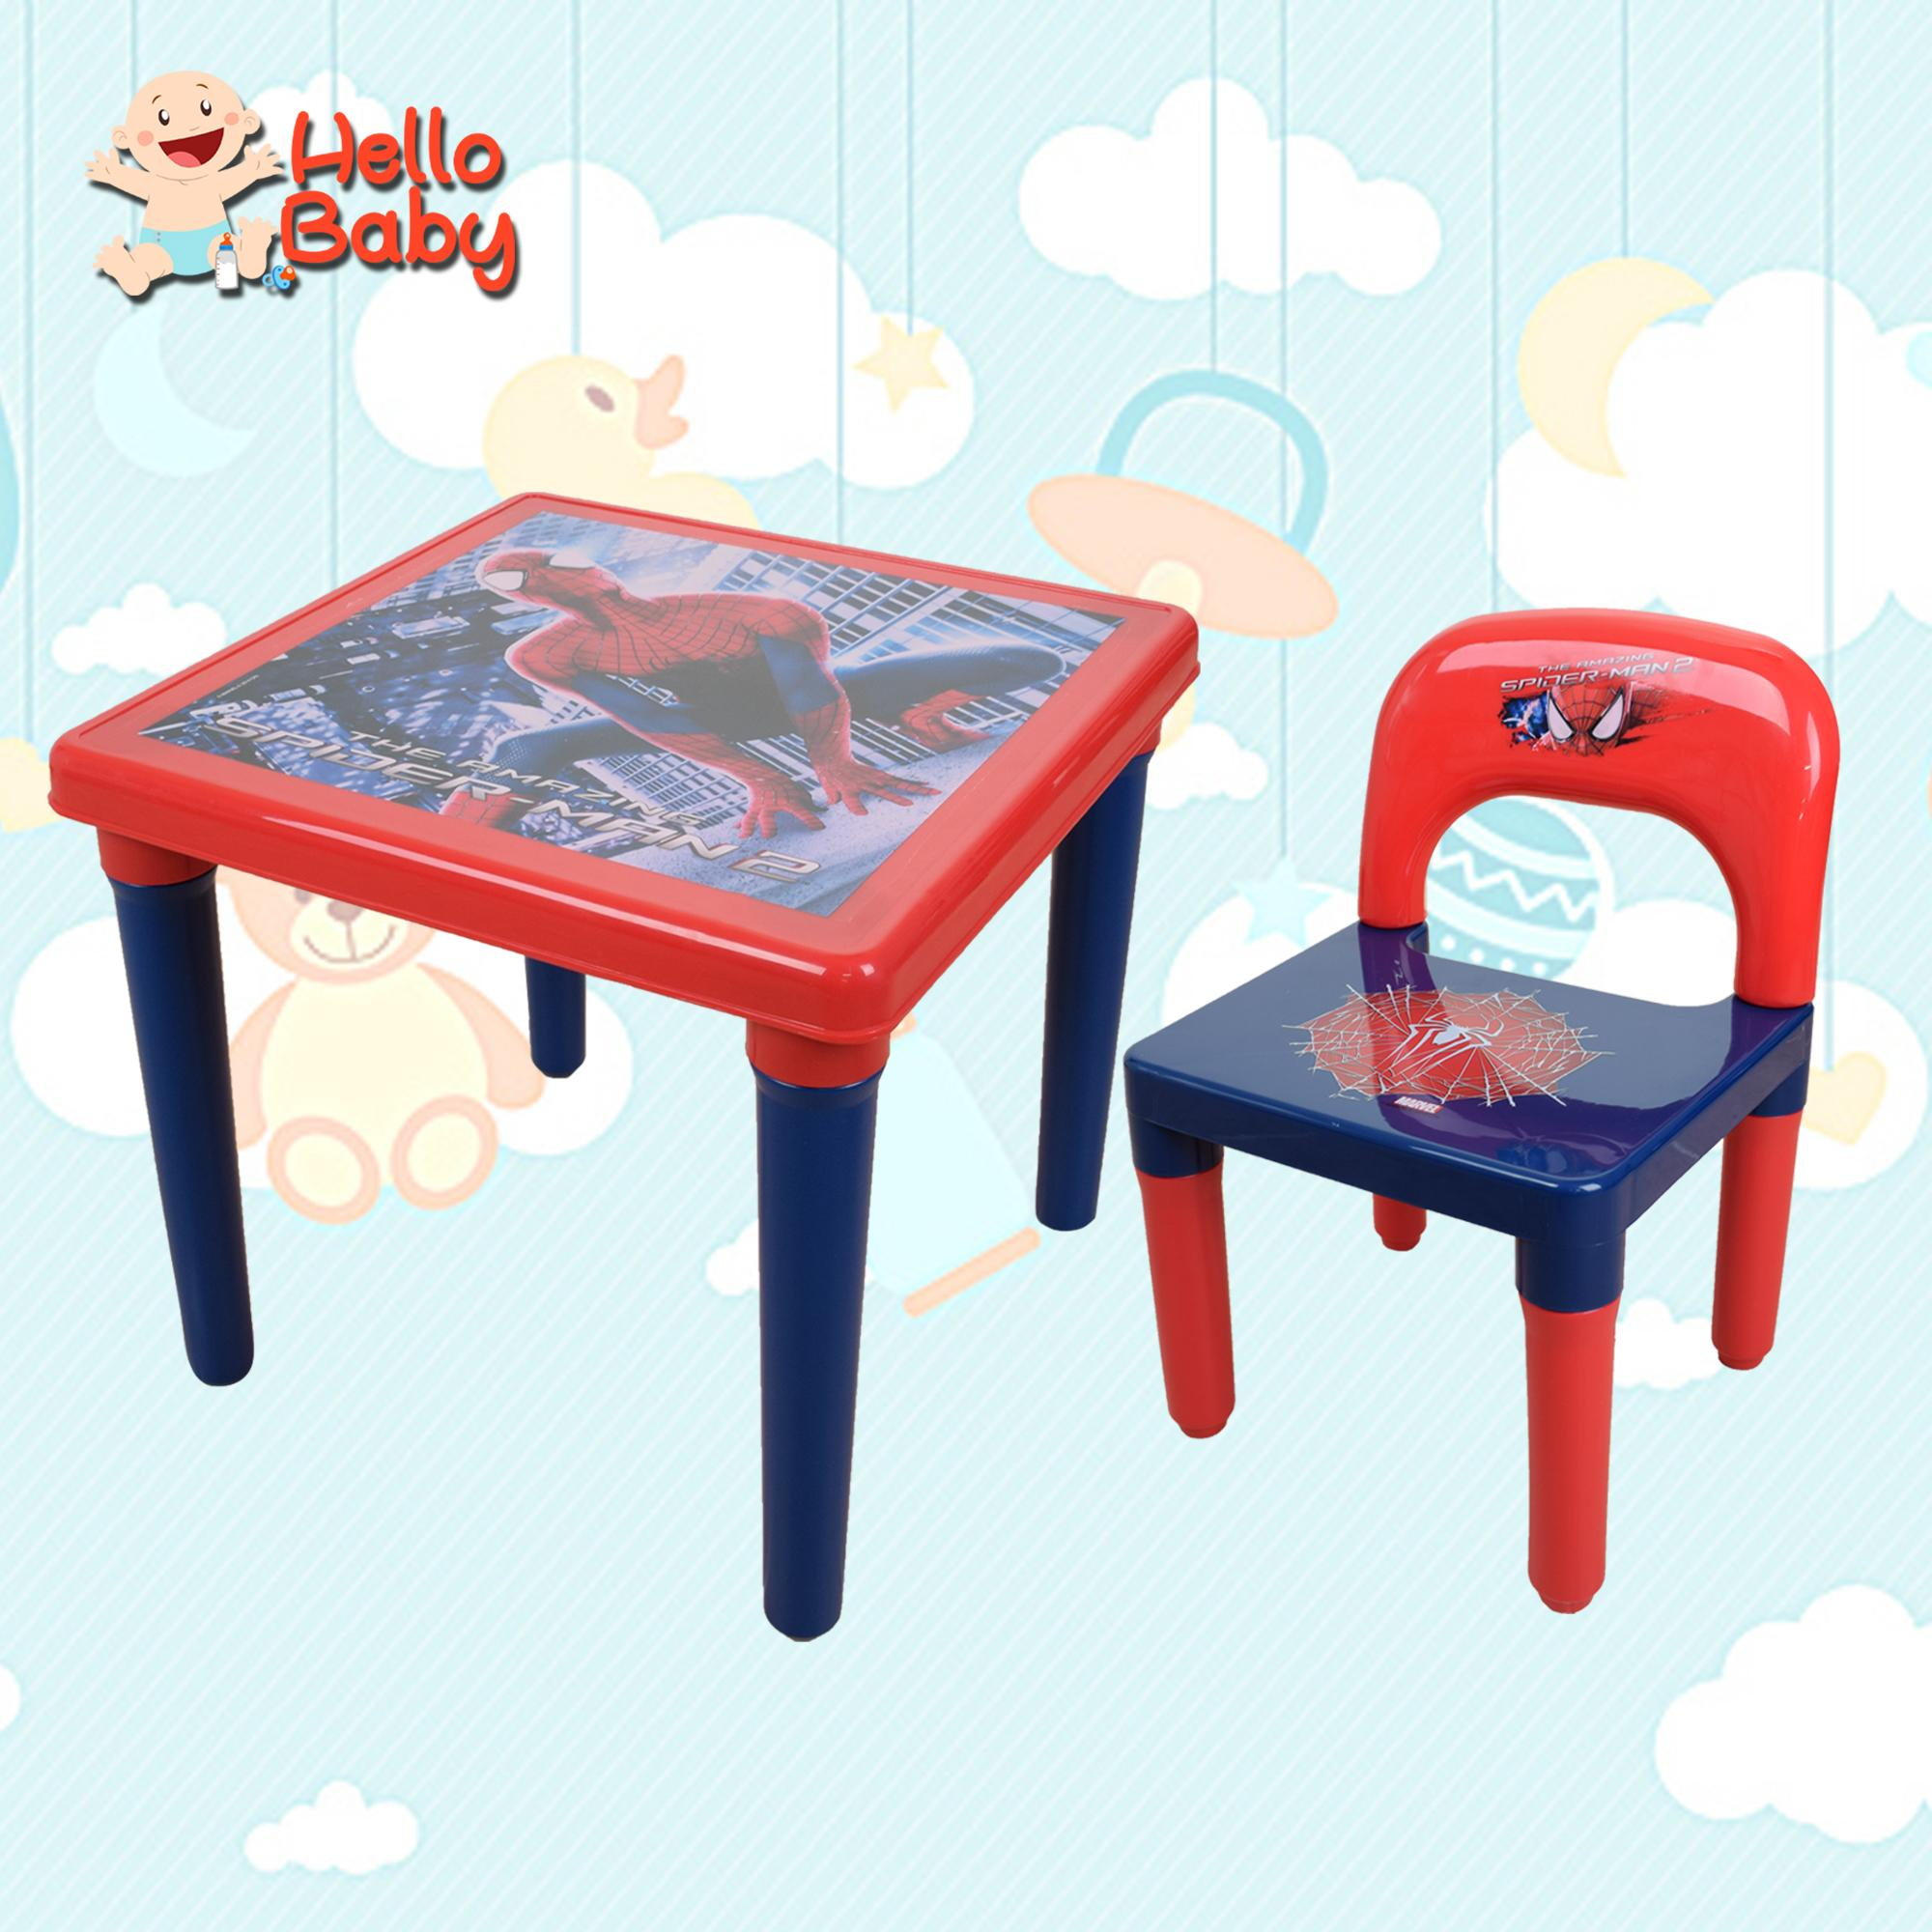 Personalized Chairs For Baby Hello Baby Vf0318 Character Table And Chairs